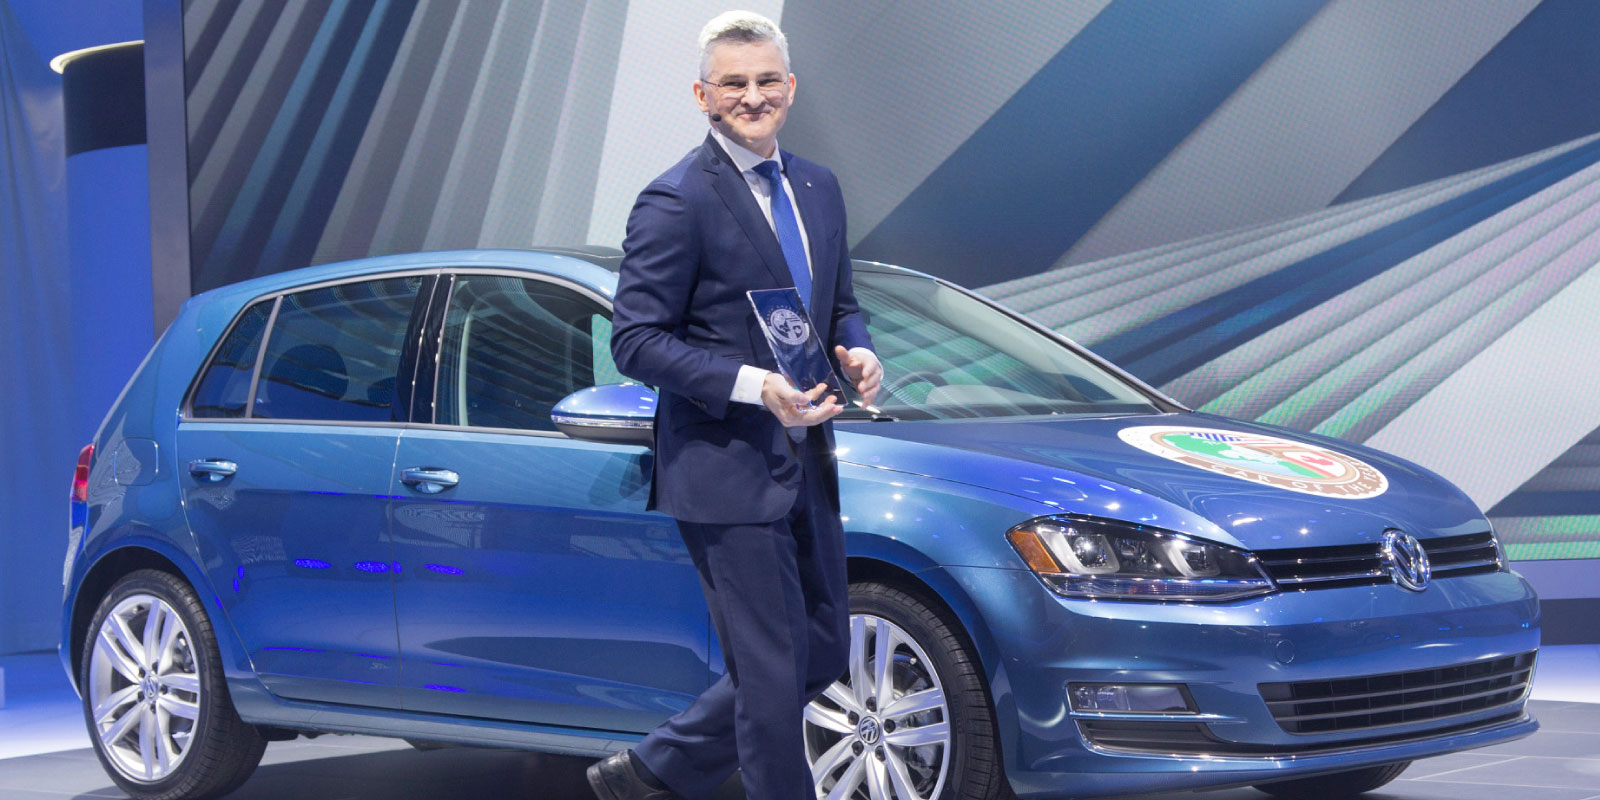 Michael Horn with 2015 North American Car of the Year (Golf)